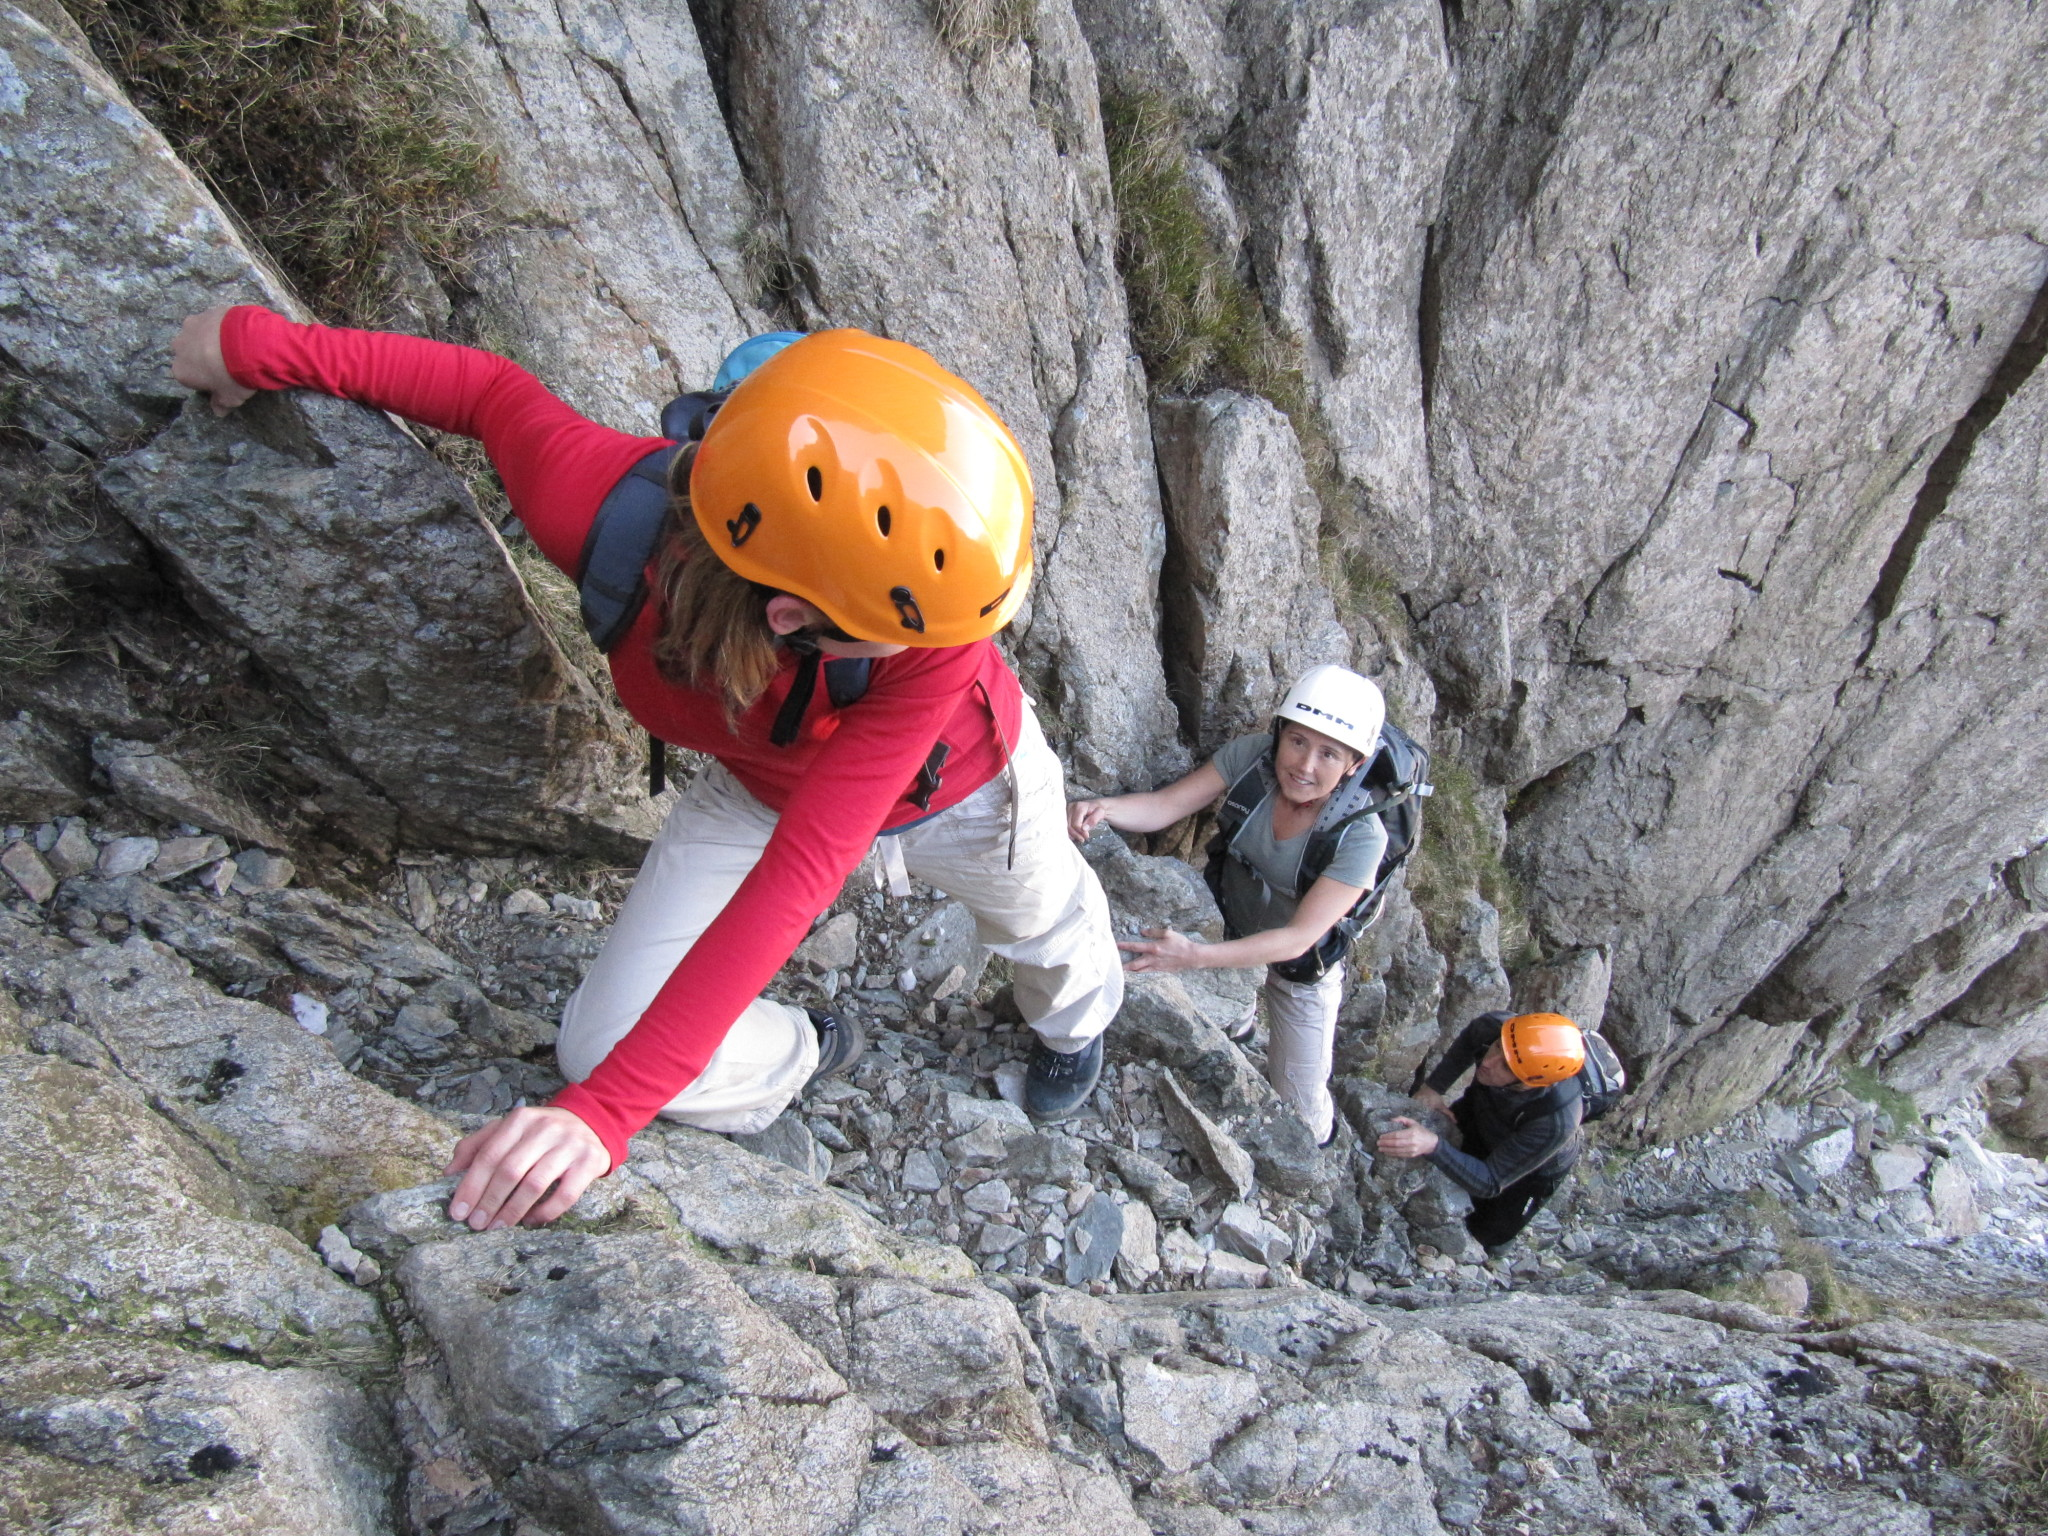 Scramblers ascending Sinister Gully on Bristly Ridge, Glyder Fach, during an introduction to scrambling course